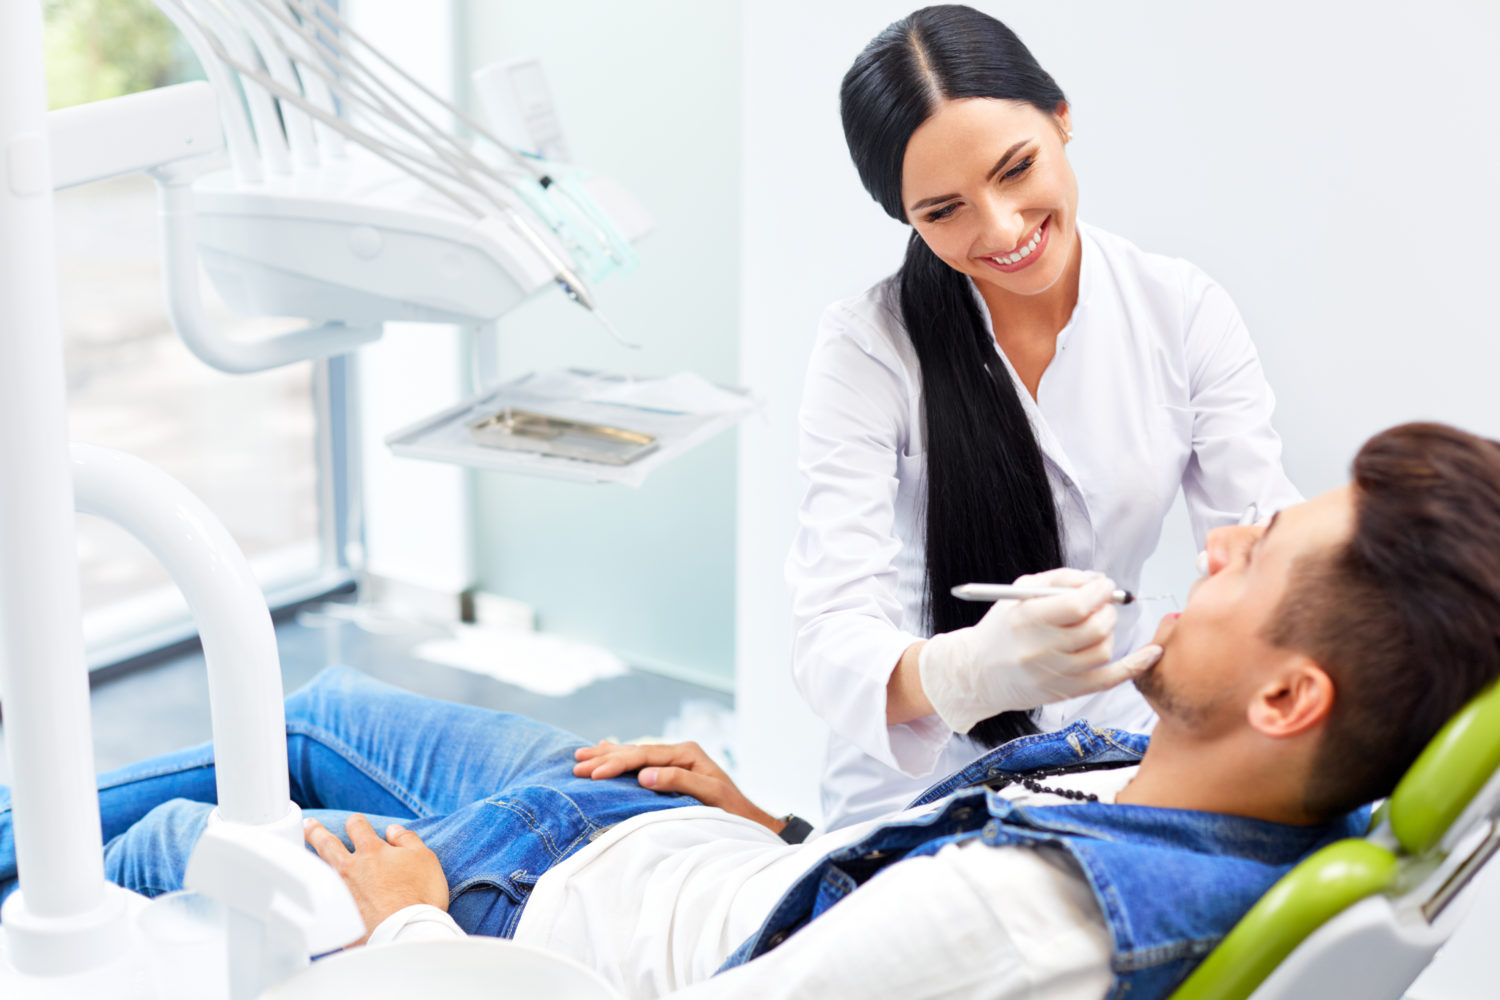 What Is The Difference Between A Regular Dental Cleaning And A Periodontal Maintenance Cleaning